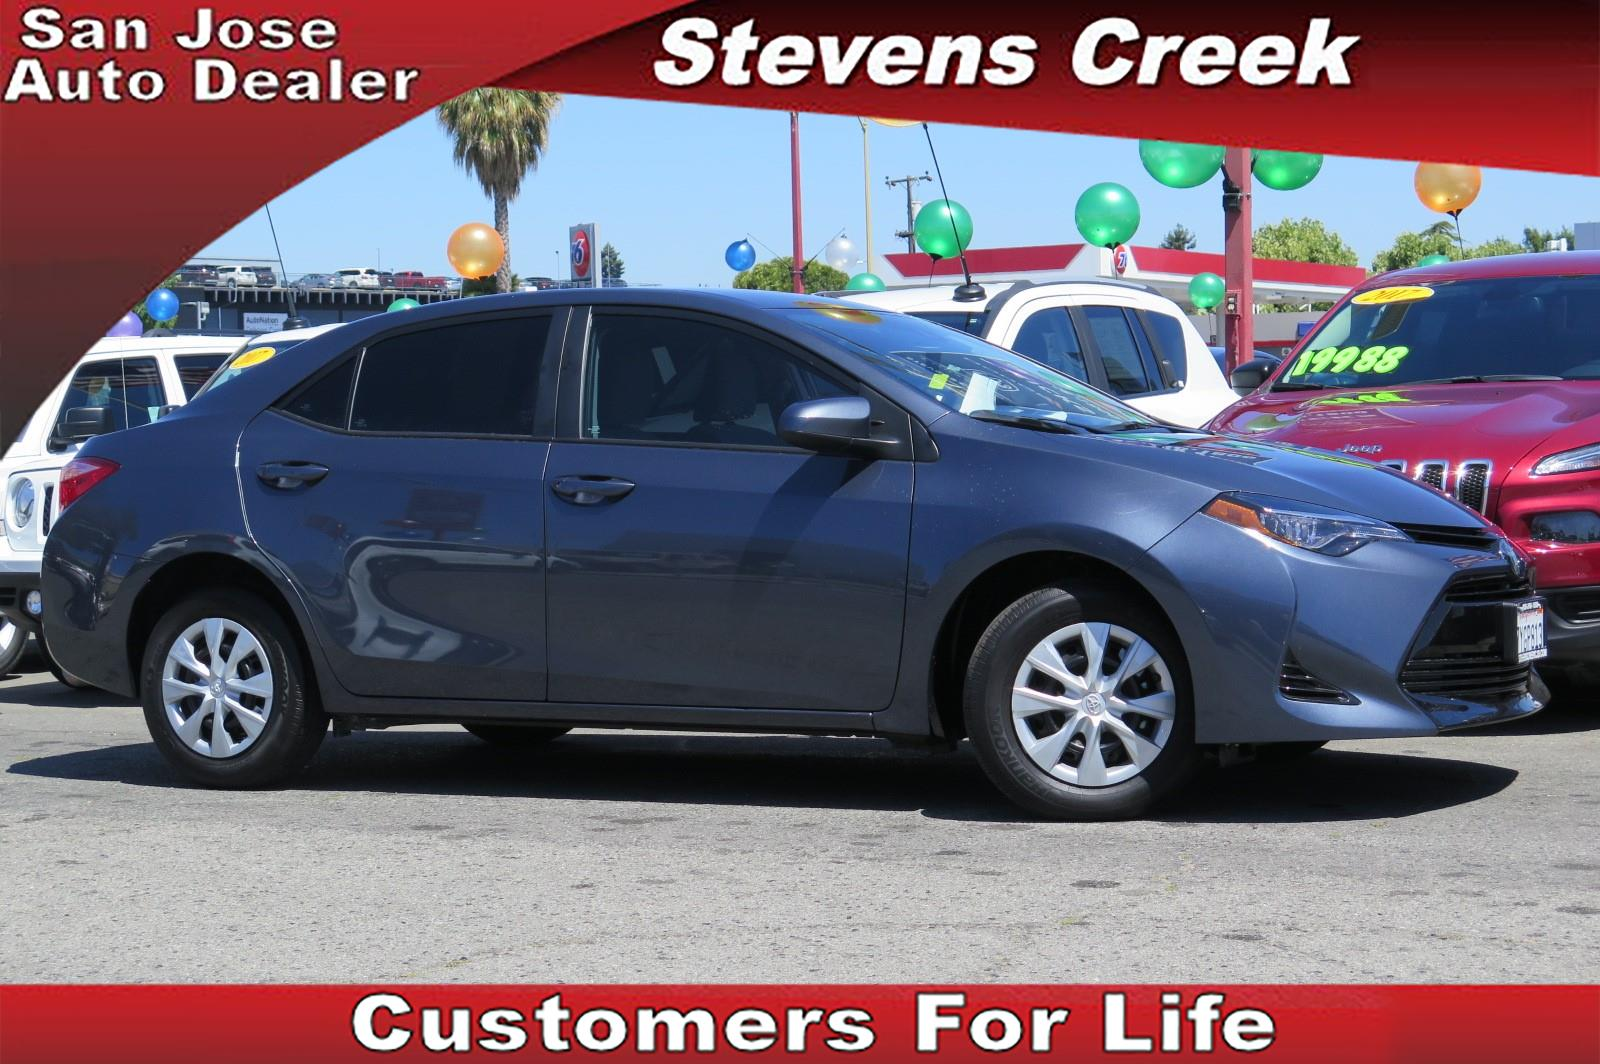 Stevens Creek Chrysler Jeep Dodge 2017 Toyota Corolla In San Jose California